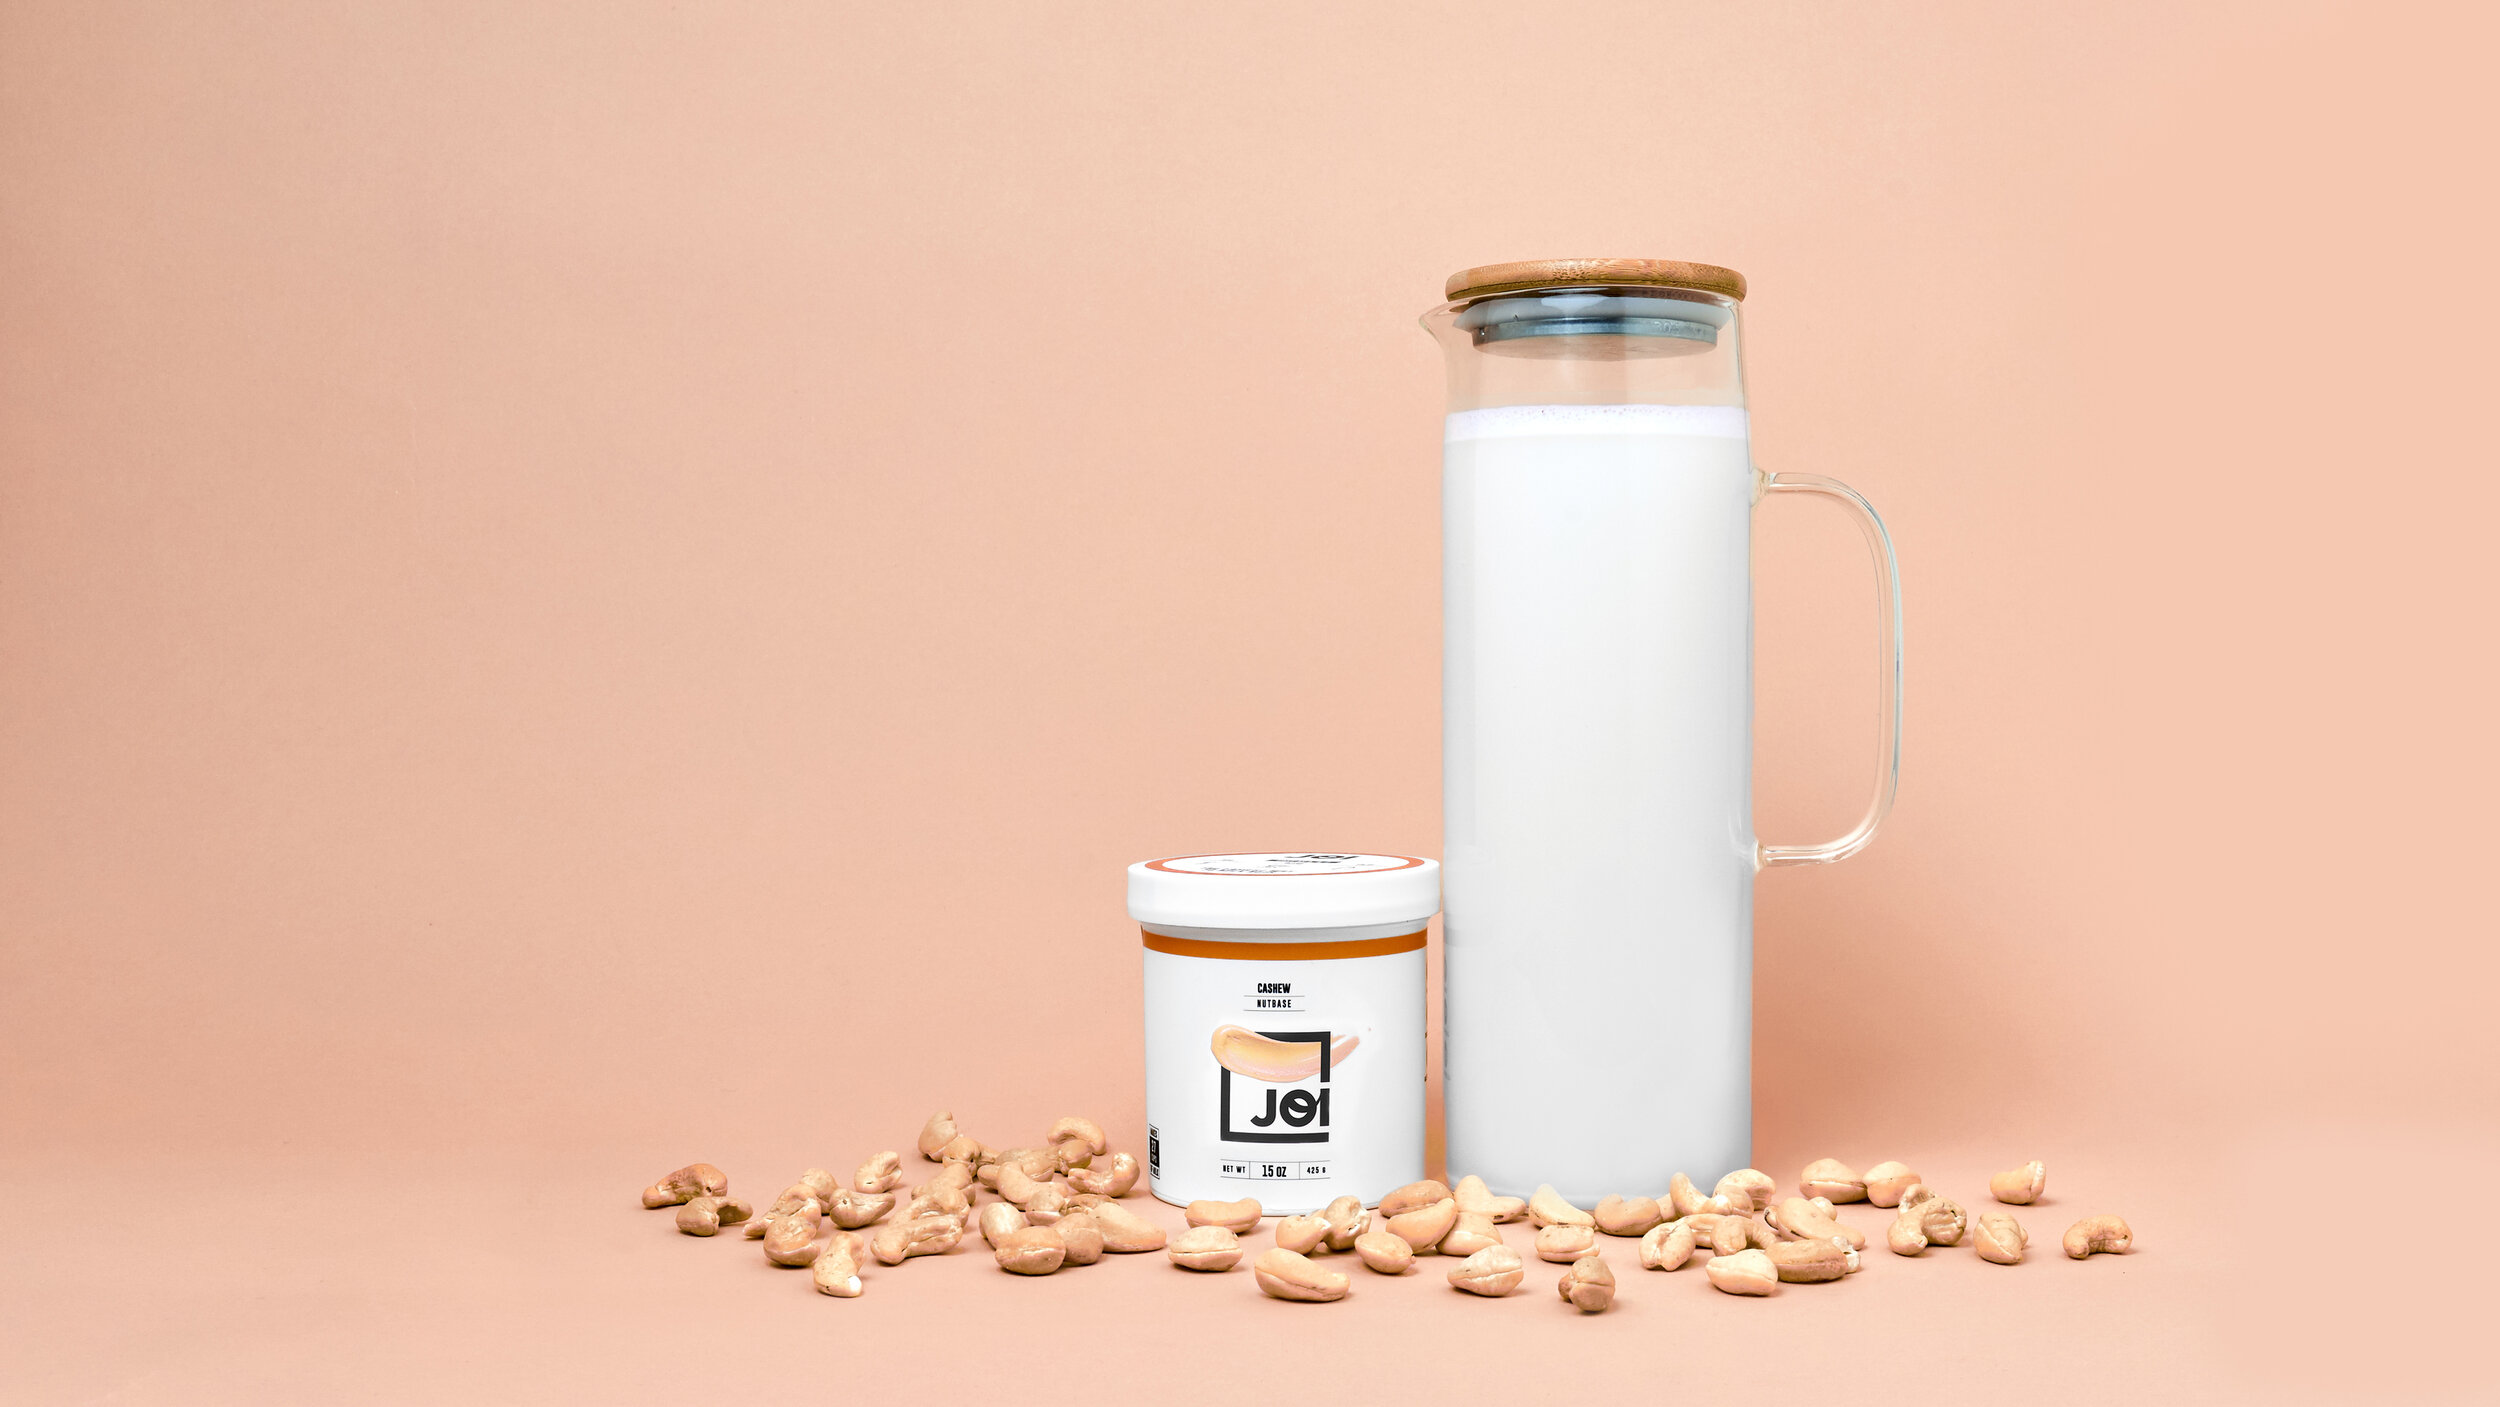 JOI makes the best nutmilk. Easily make your own high quality nut milk with JOI!